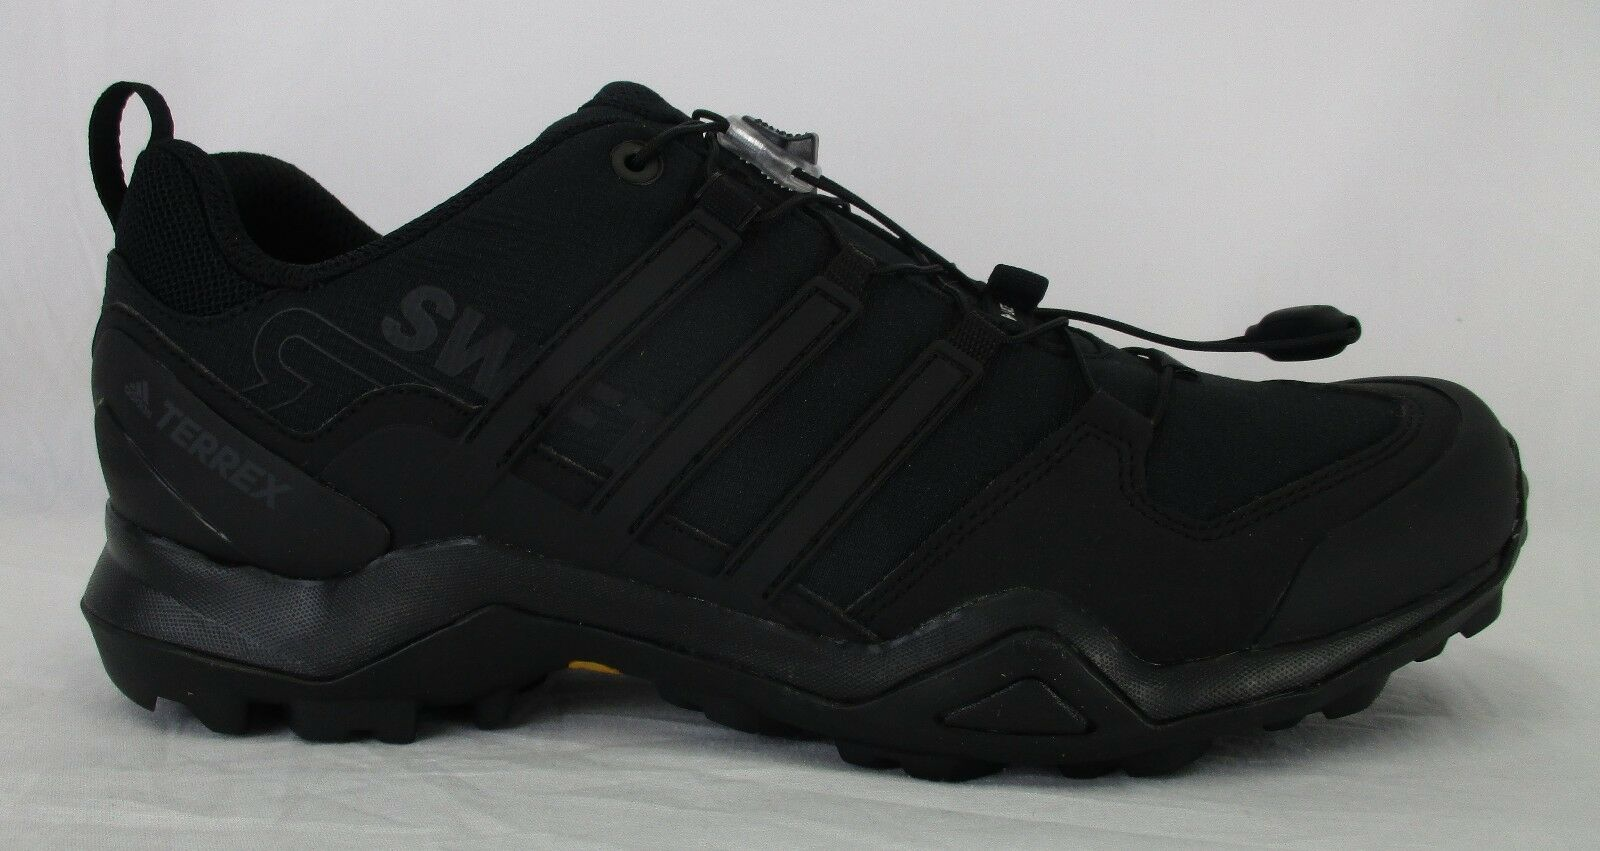 Adidas Mens Shoes Terrex Swift R2 Shoes Mens CM7486 Black/Black/Black Size 10 d49d51